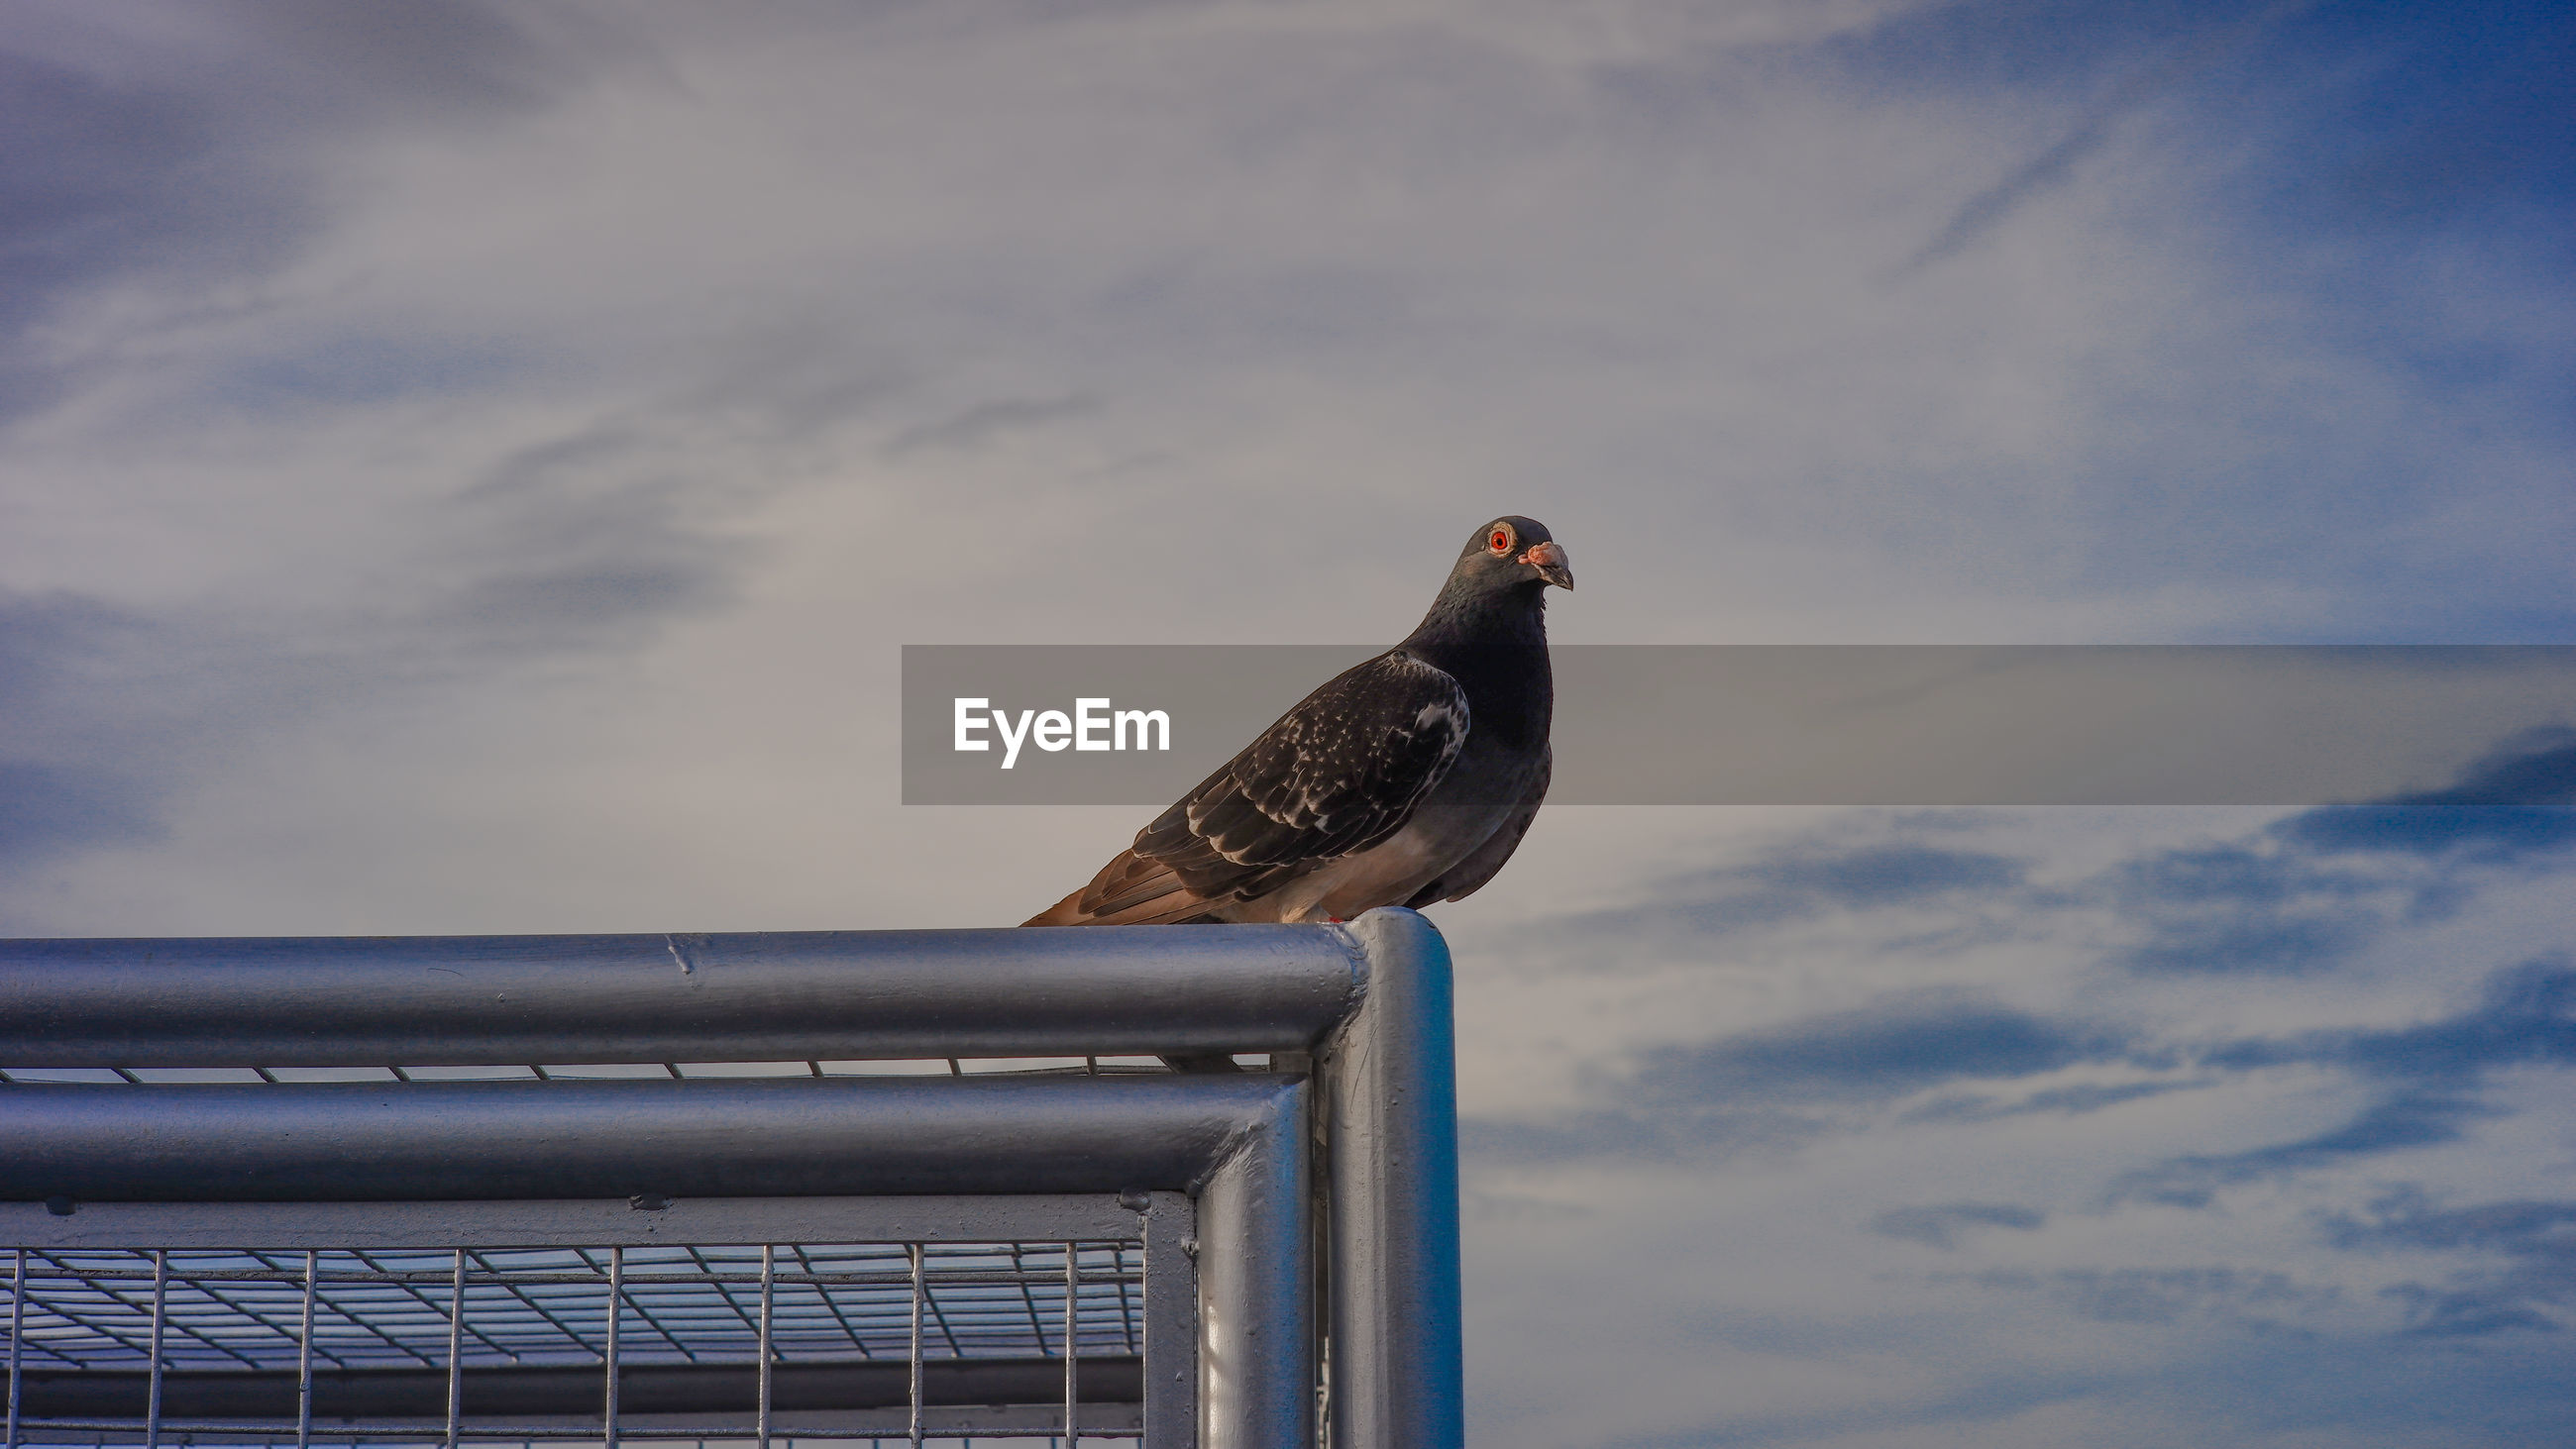 BIRD PERCHING ON RAILING AGAINST SKY